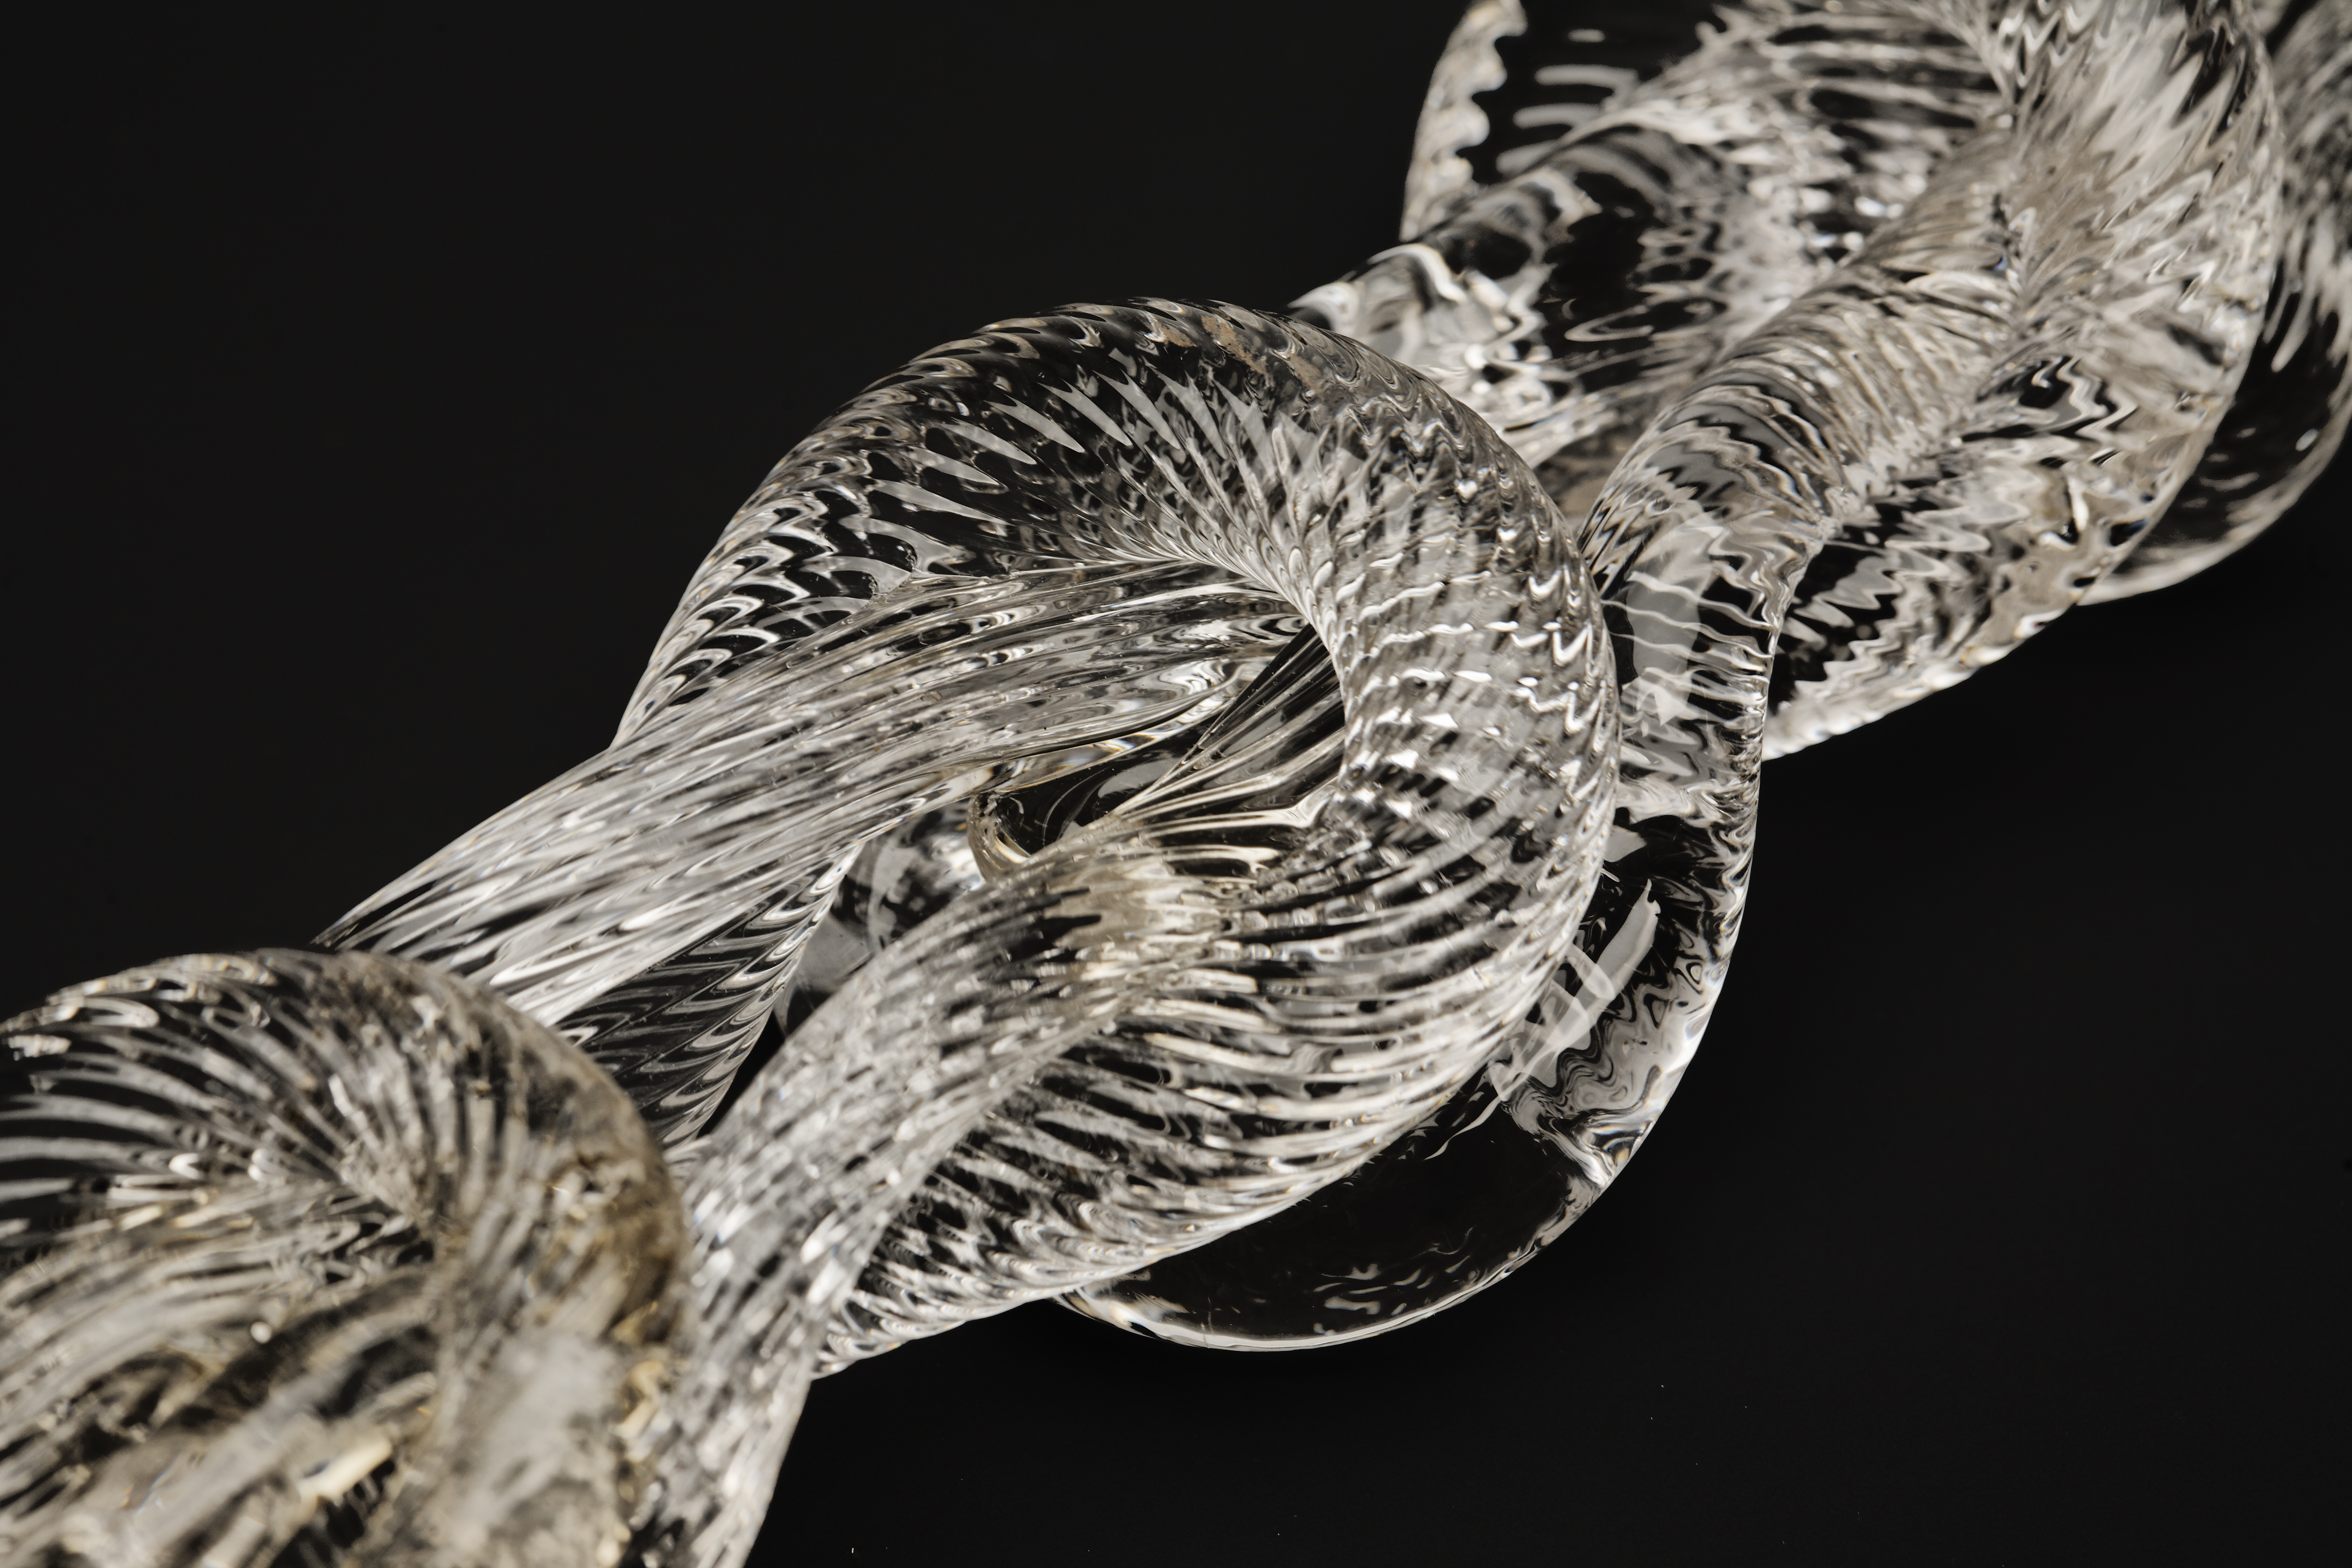 Glass chain prototype by designers Tobias Wong and Tom Scott